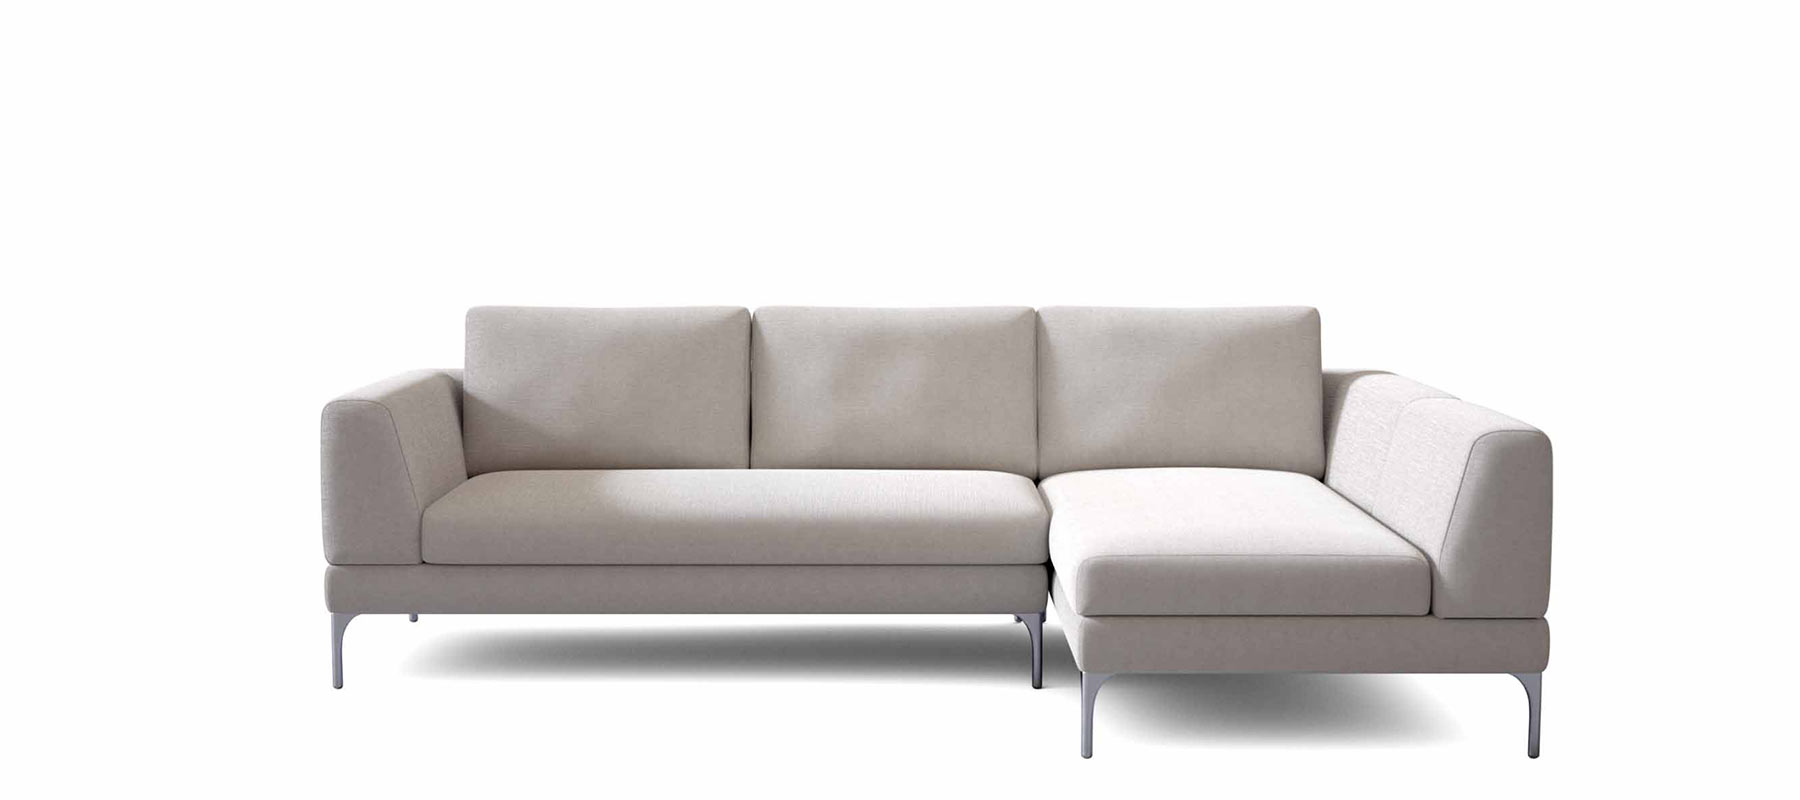 Cheap Modular Lounges Plaza Modular Sofa Contemporary Design Lounge Couch King